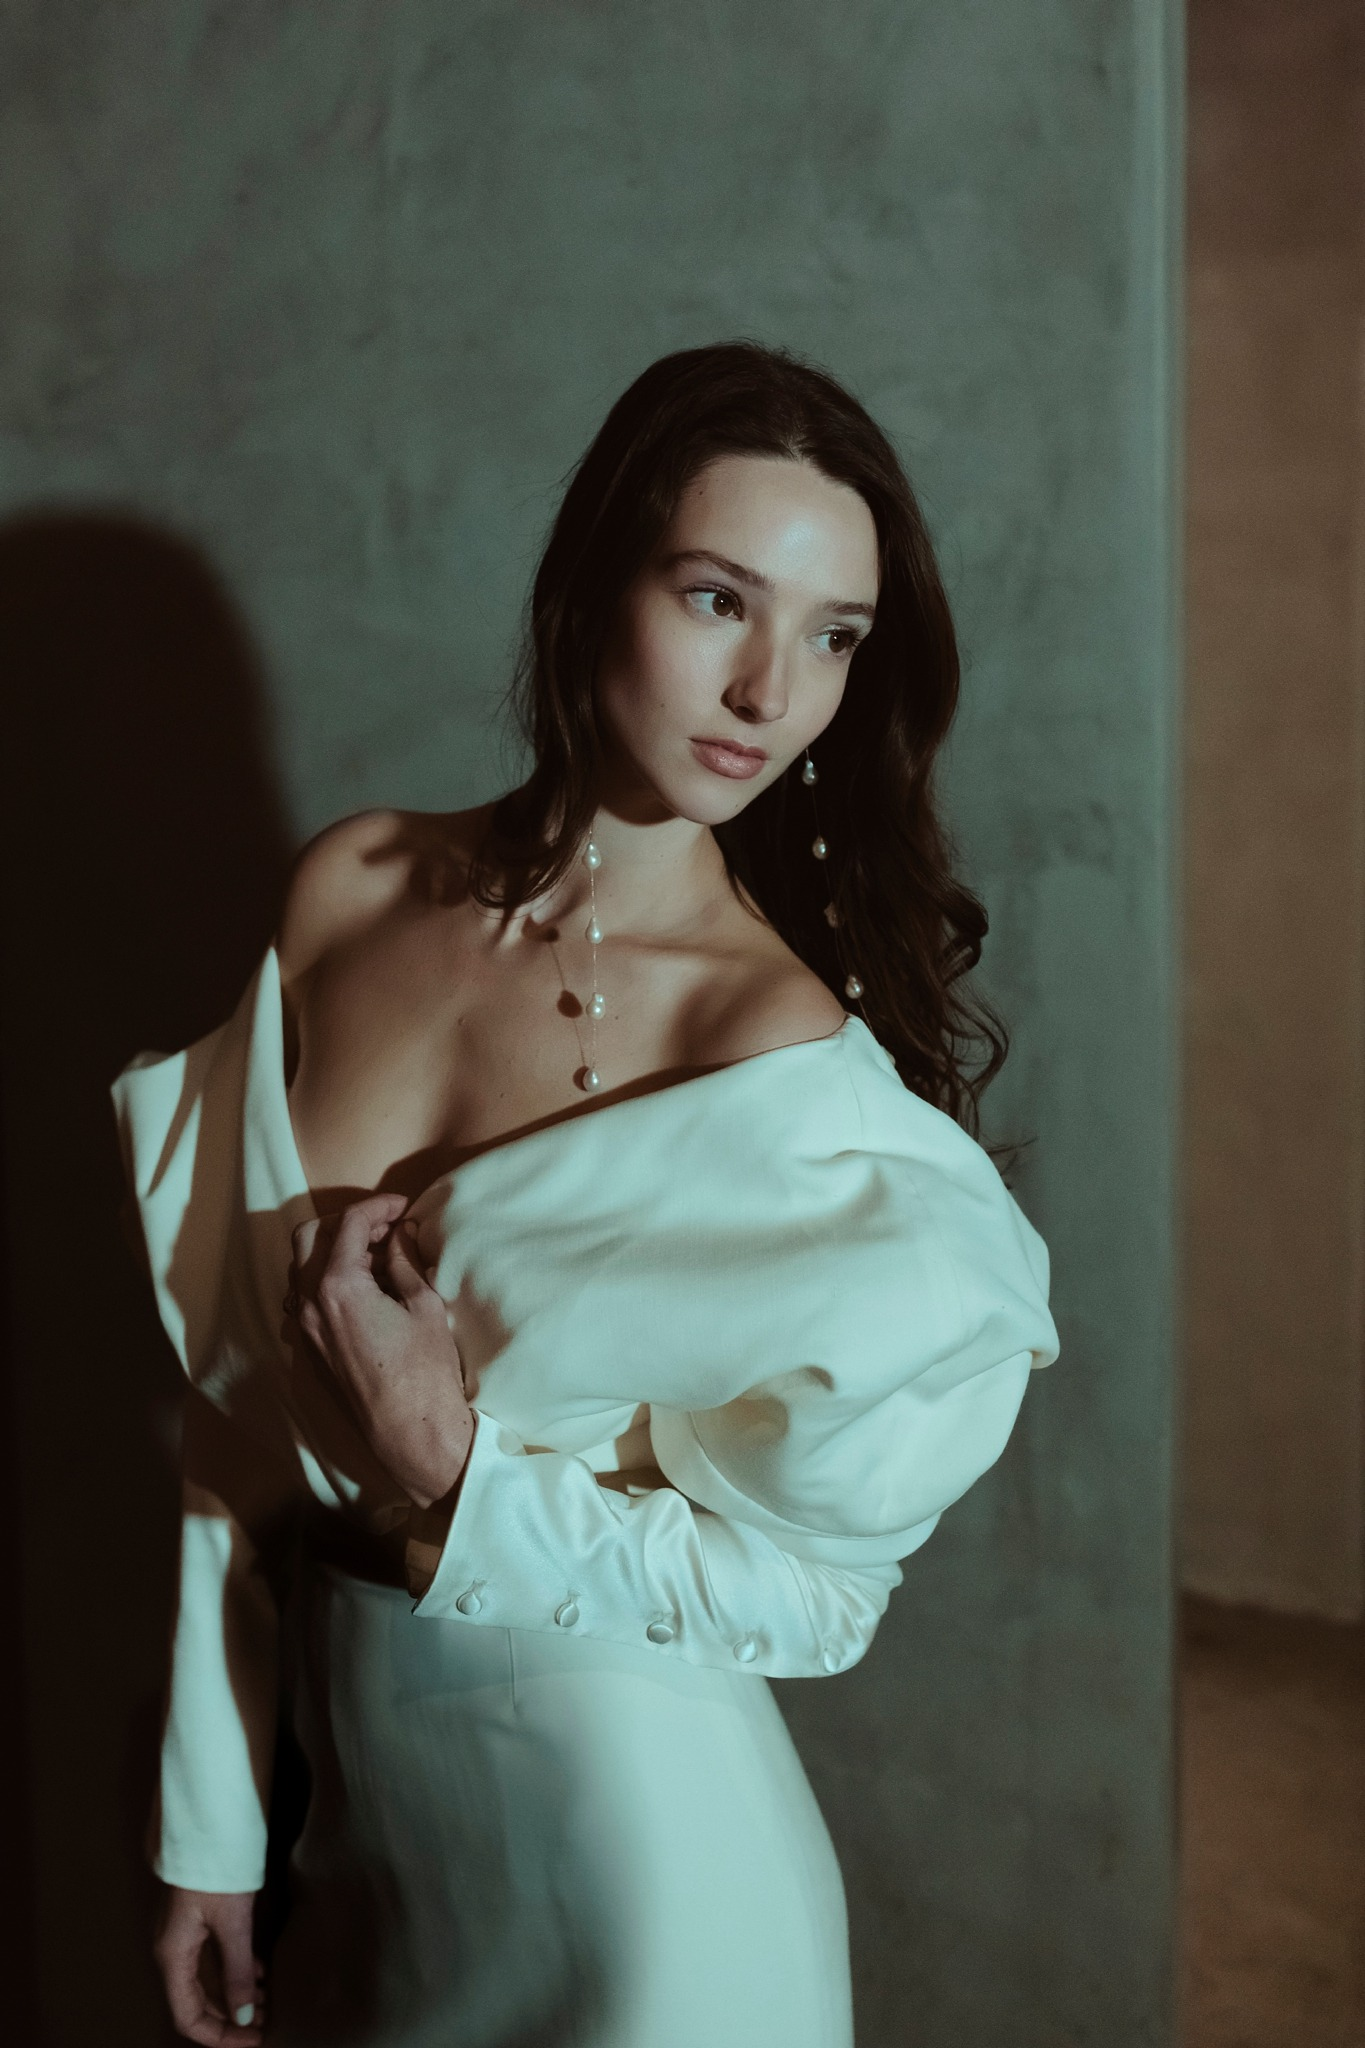 model wears Danielle Frankel wedding dress at editorial shoot with LOHO bride in Los Angeles by photographer Sarah Falugo